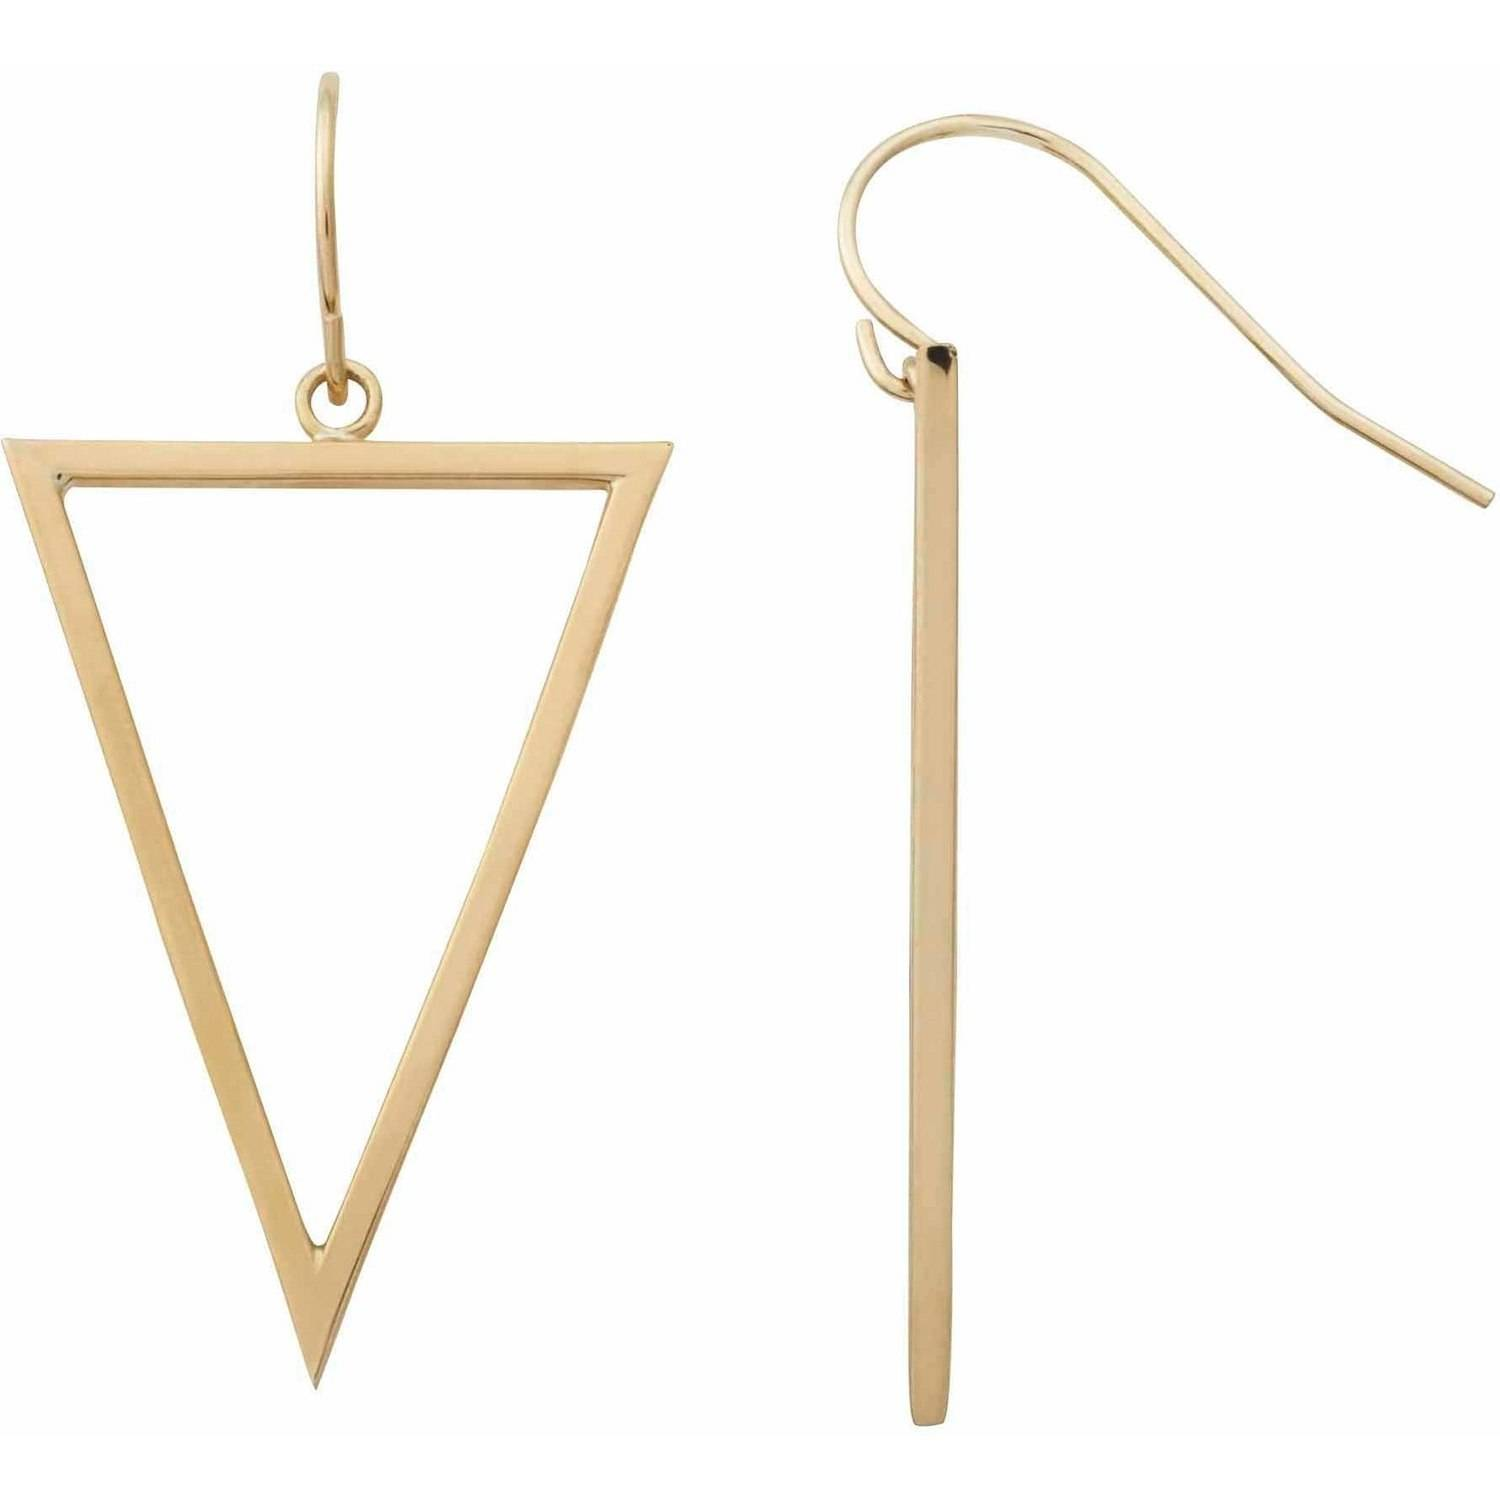 Simply Gold 10kt Yellow Gold Inverted Triangle Dangle Earrings